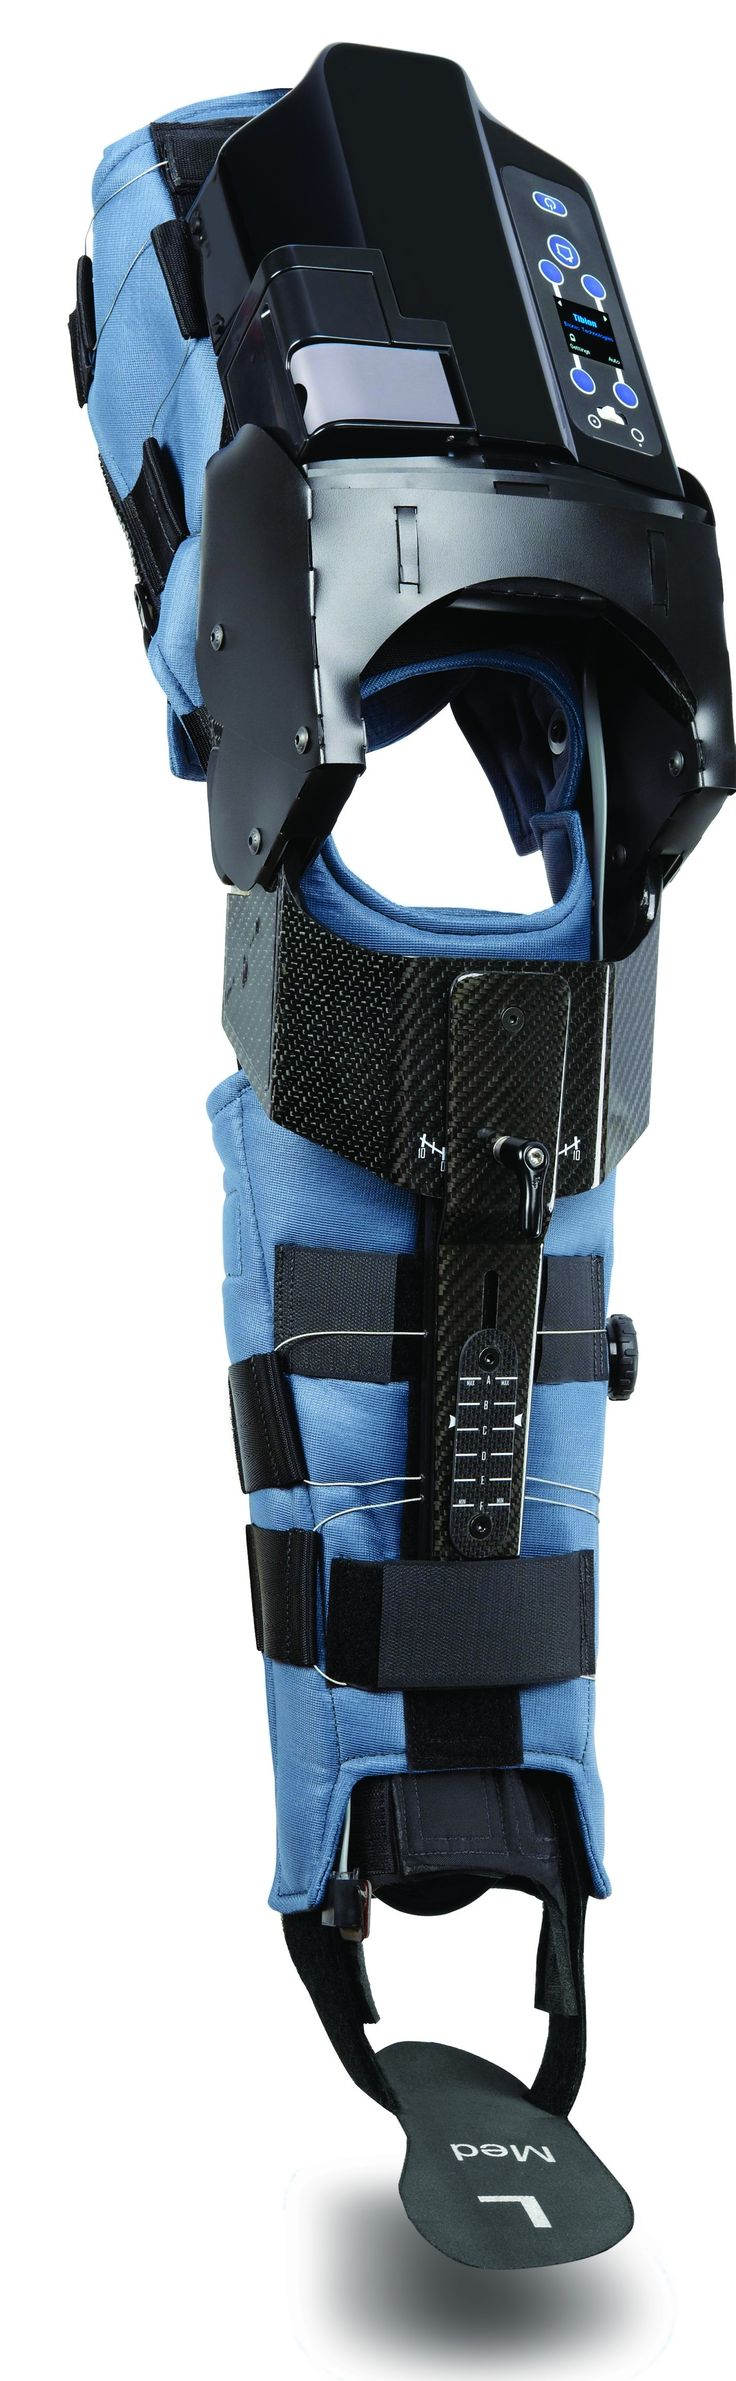 AlterG Bionic Leg, Providence News, http://www.providencelifeservices.com/providence-of-zeeland-first-in-michigan-to-use-bionic-leg/